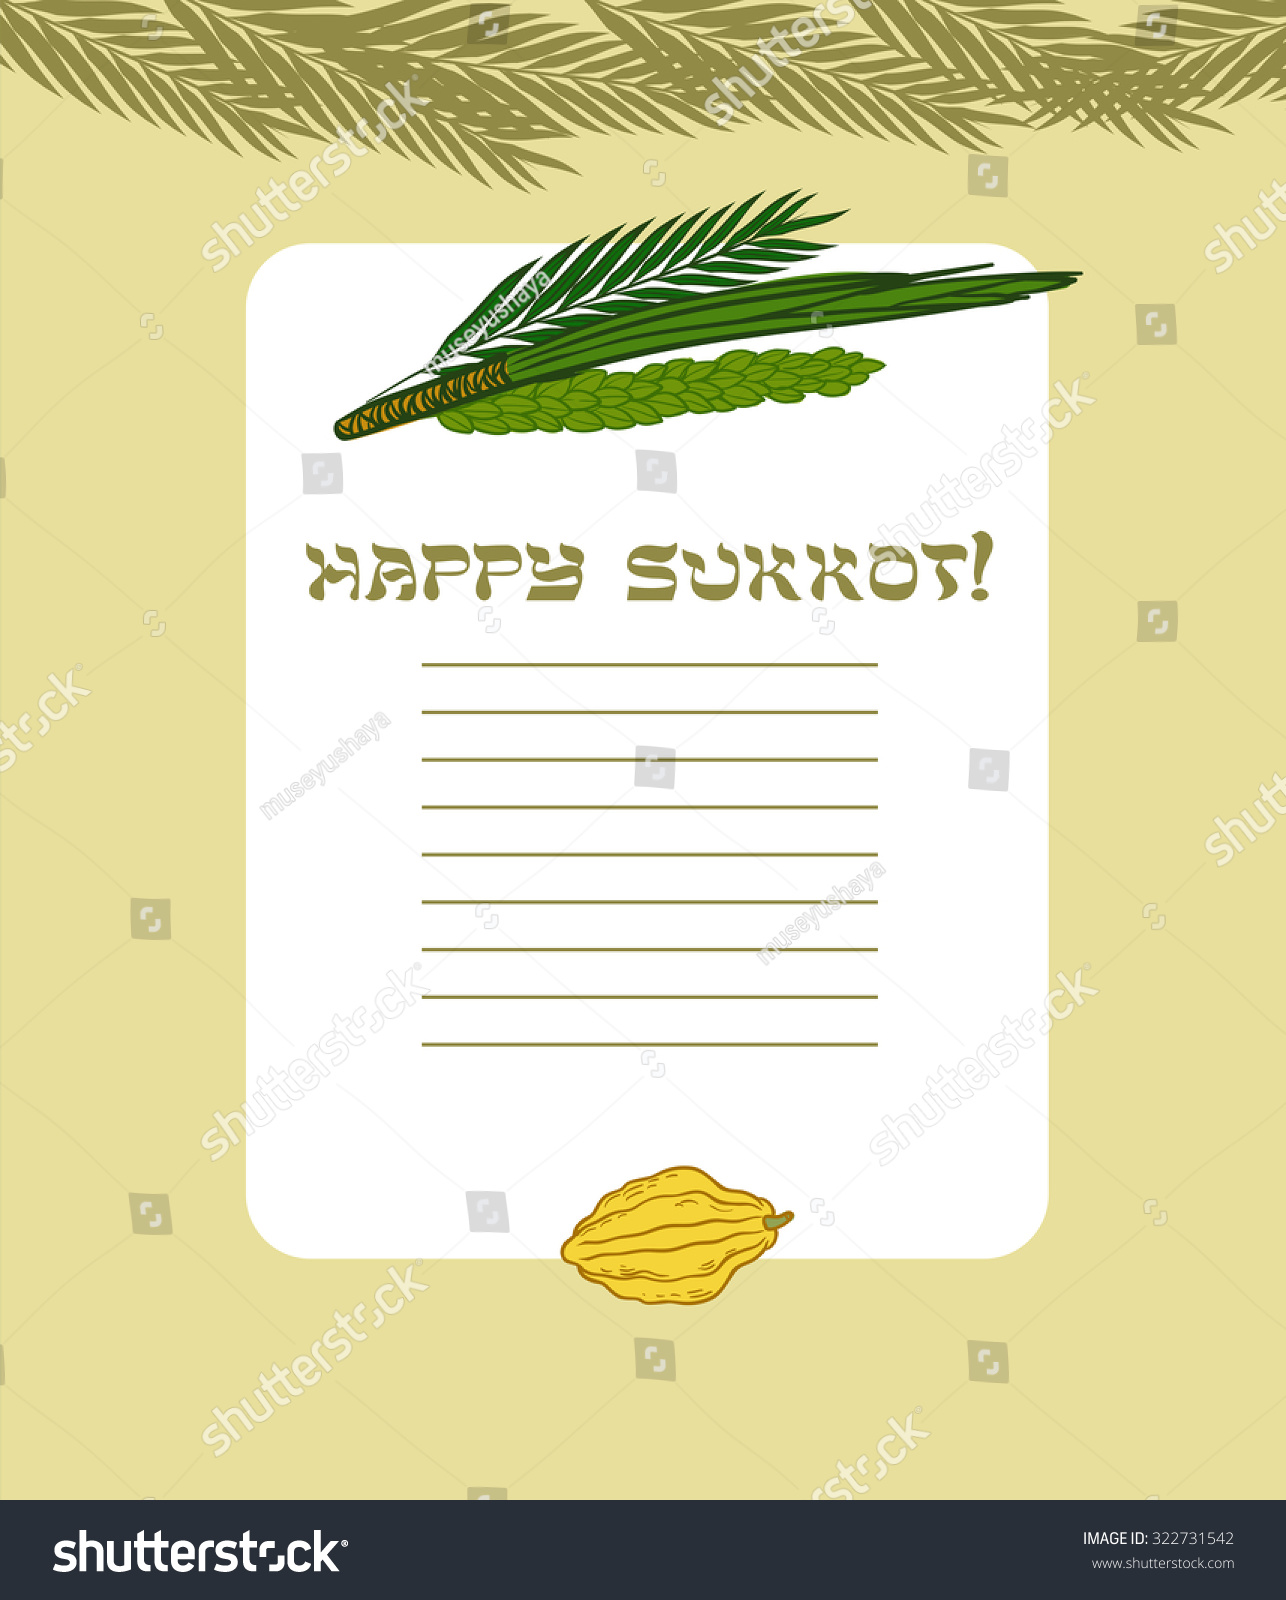 Sukkot Festival Greeting Card Design Vector Stock Vector Royalty